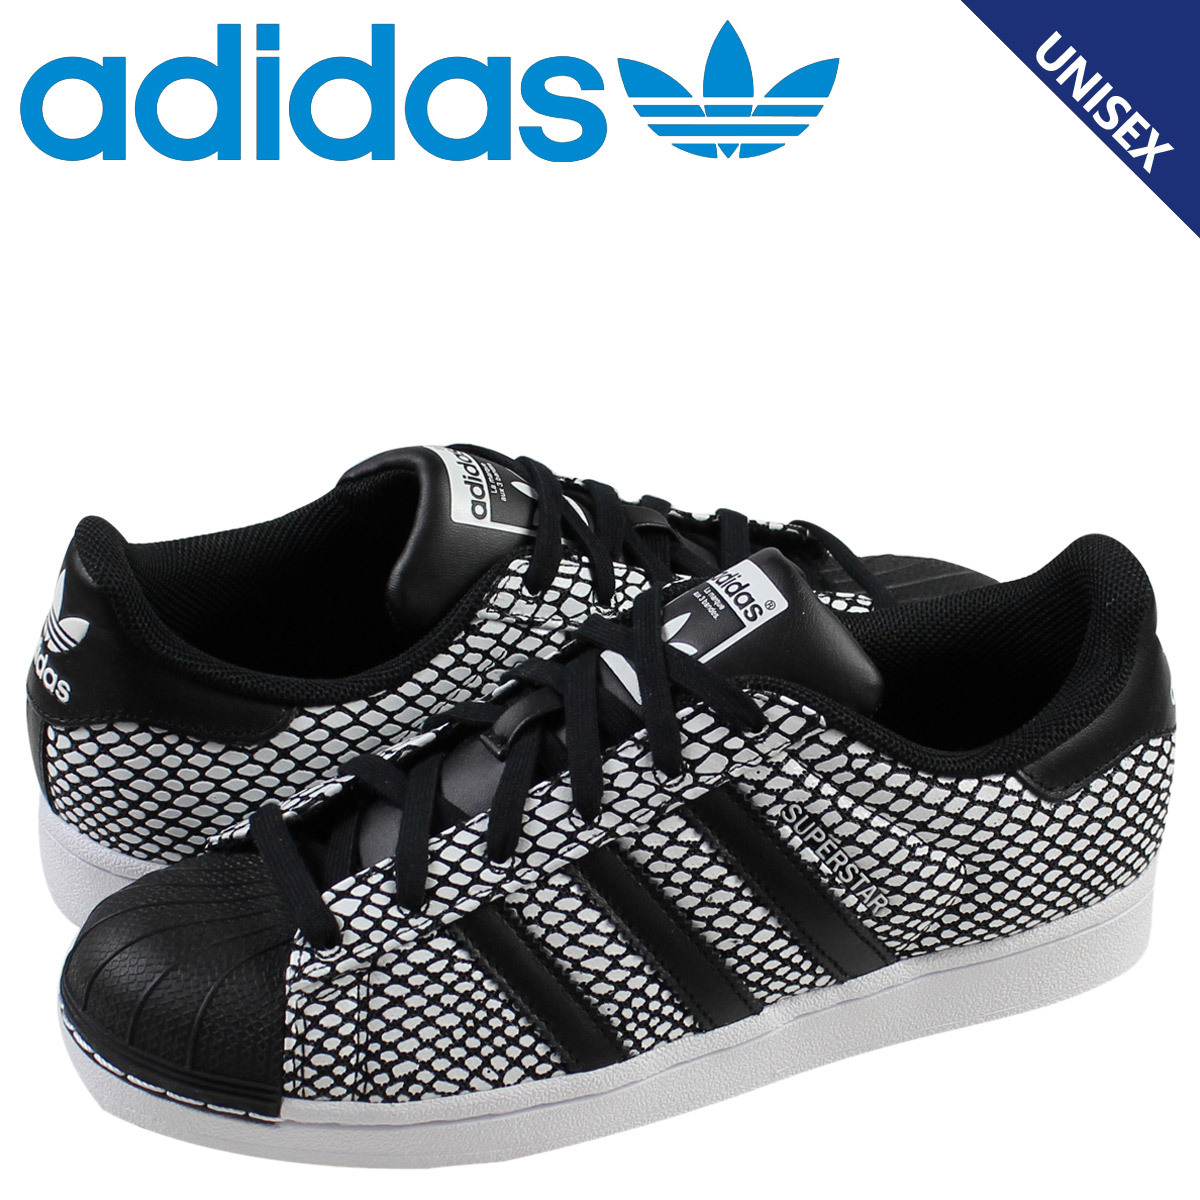 adidas superstar 31